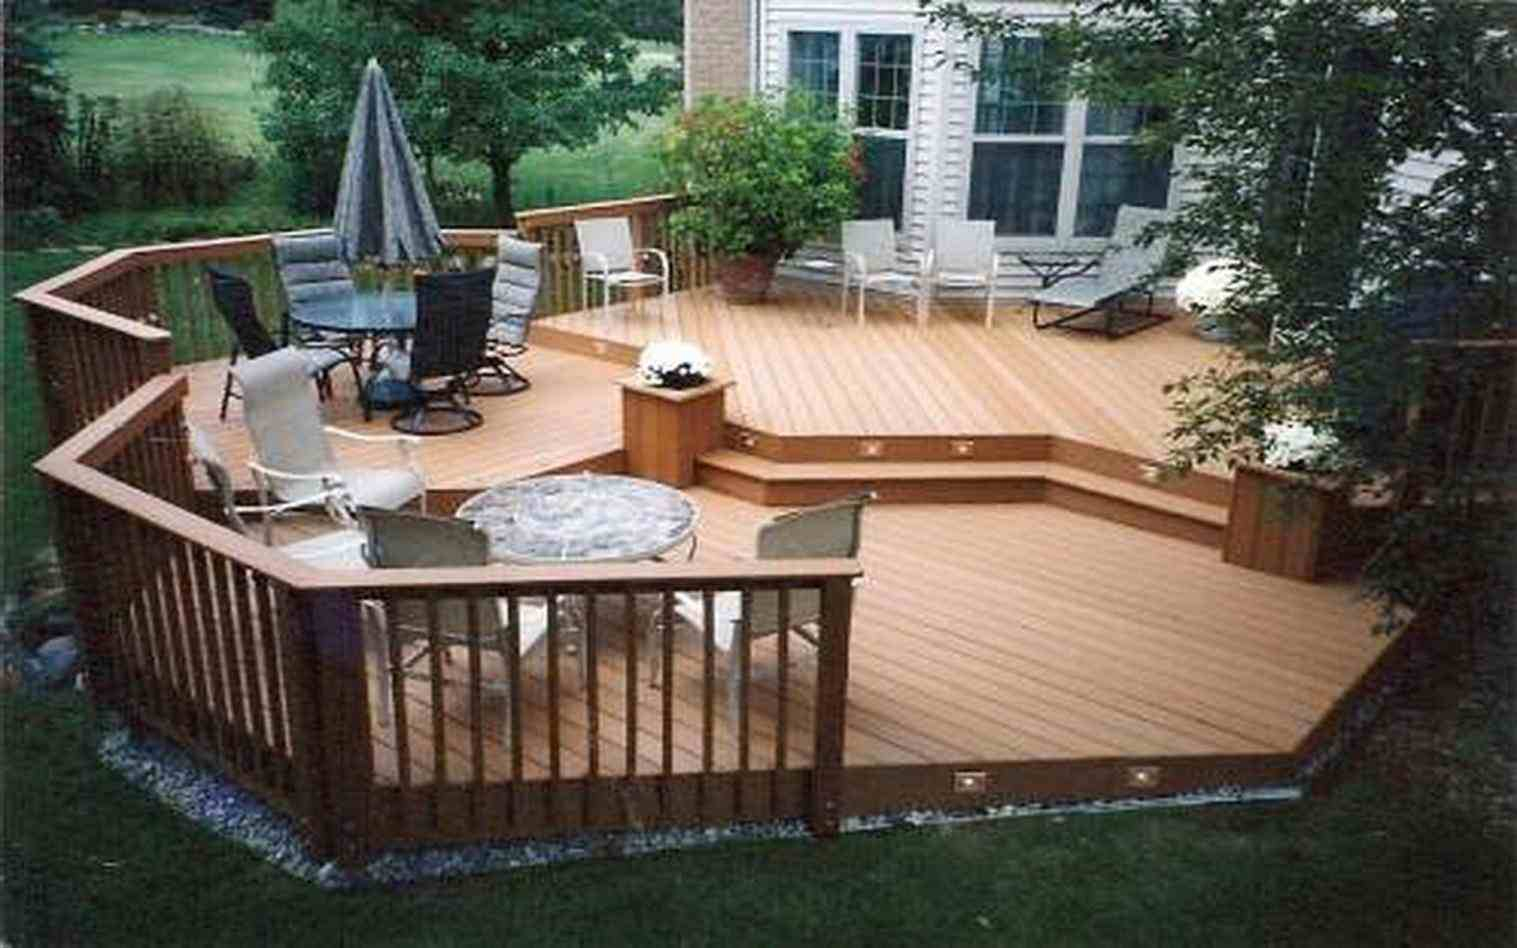 Deck Ideas Patio Small Backyardspatio And For Yards Images On A within Small Deck Ideas For Small Backyards